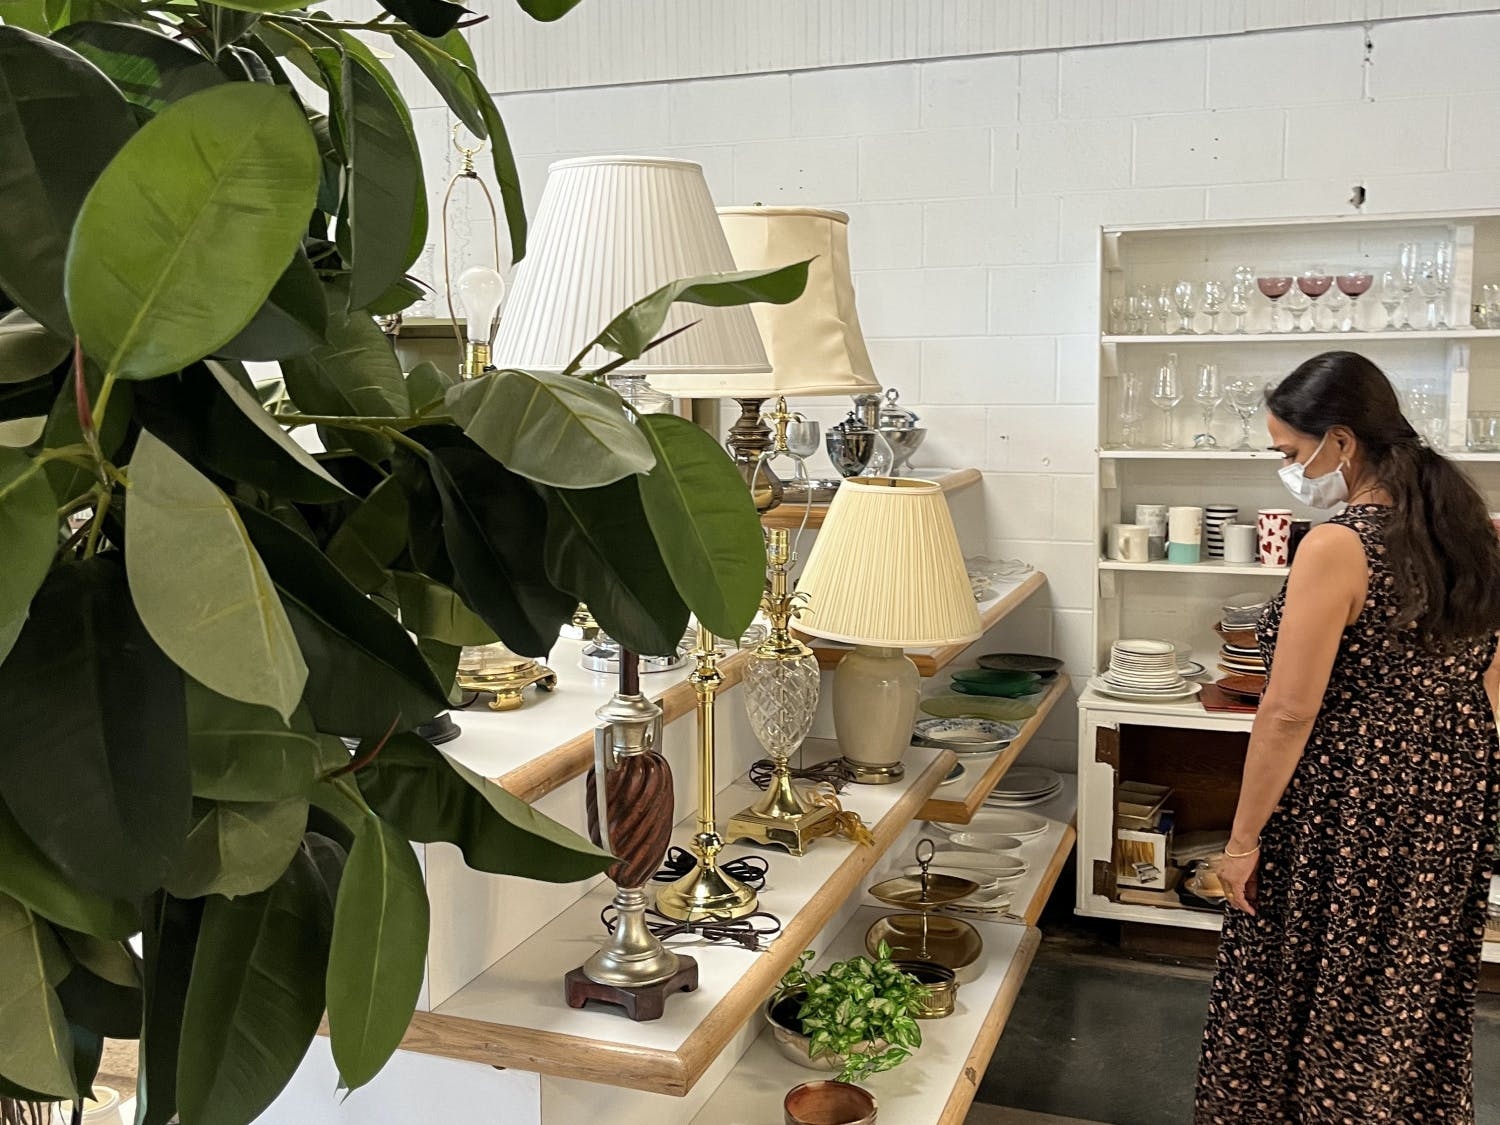 A customer examines a serving platter among the shelves of plates in the ReStore on Oct. 12. The store relocated on Sept. 28 to 2301 NW Sixth St. with a soft opening. It plans to hold a ribbon-cutting Nov. 5